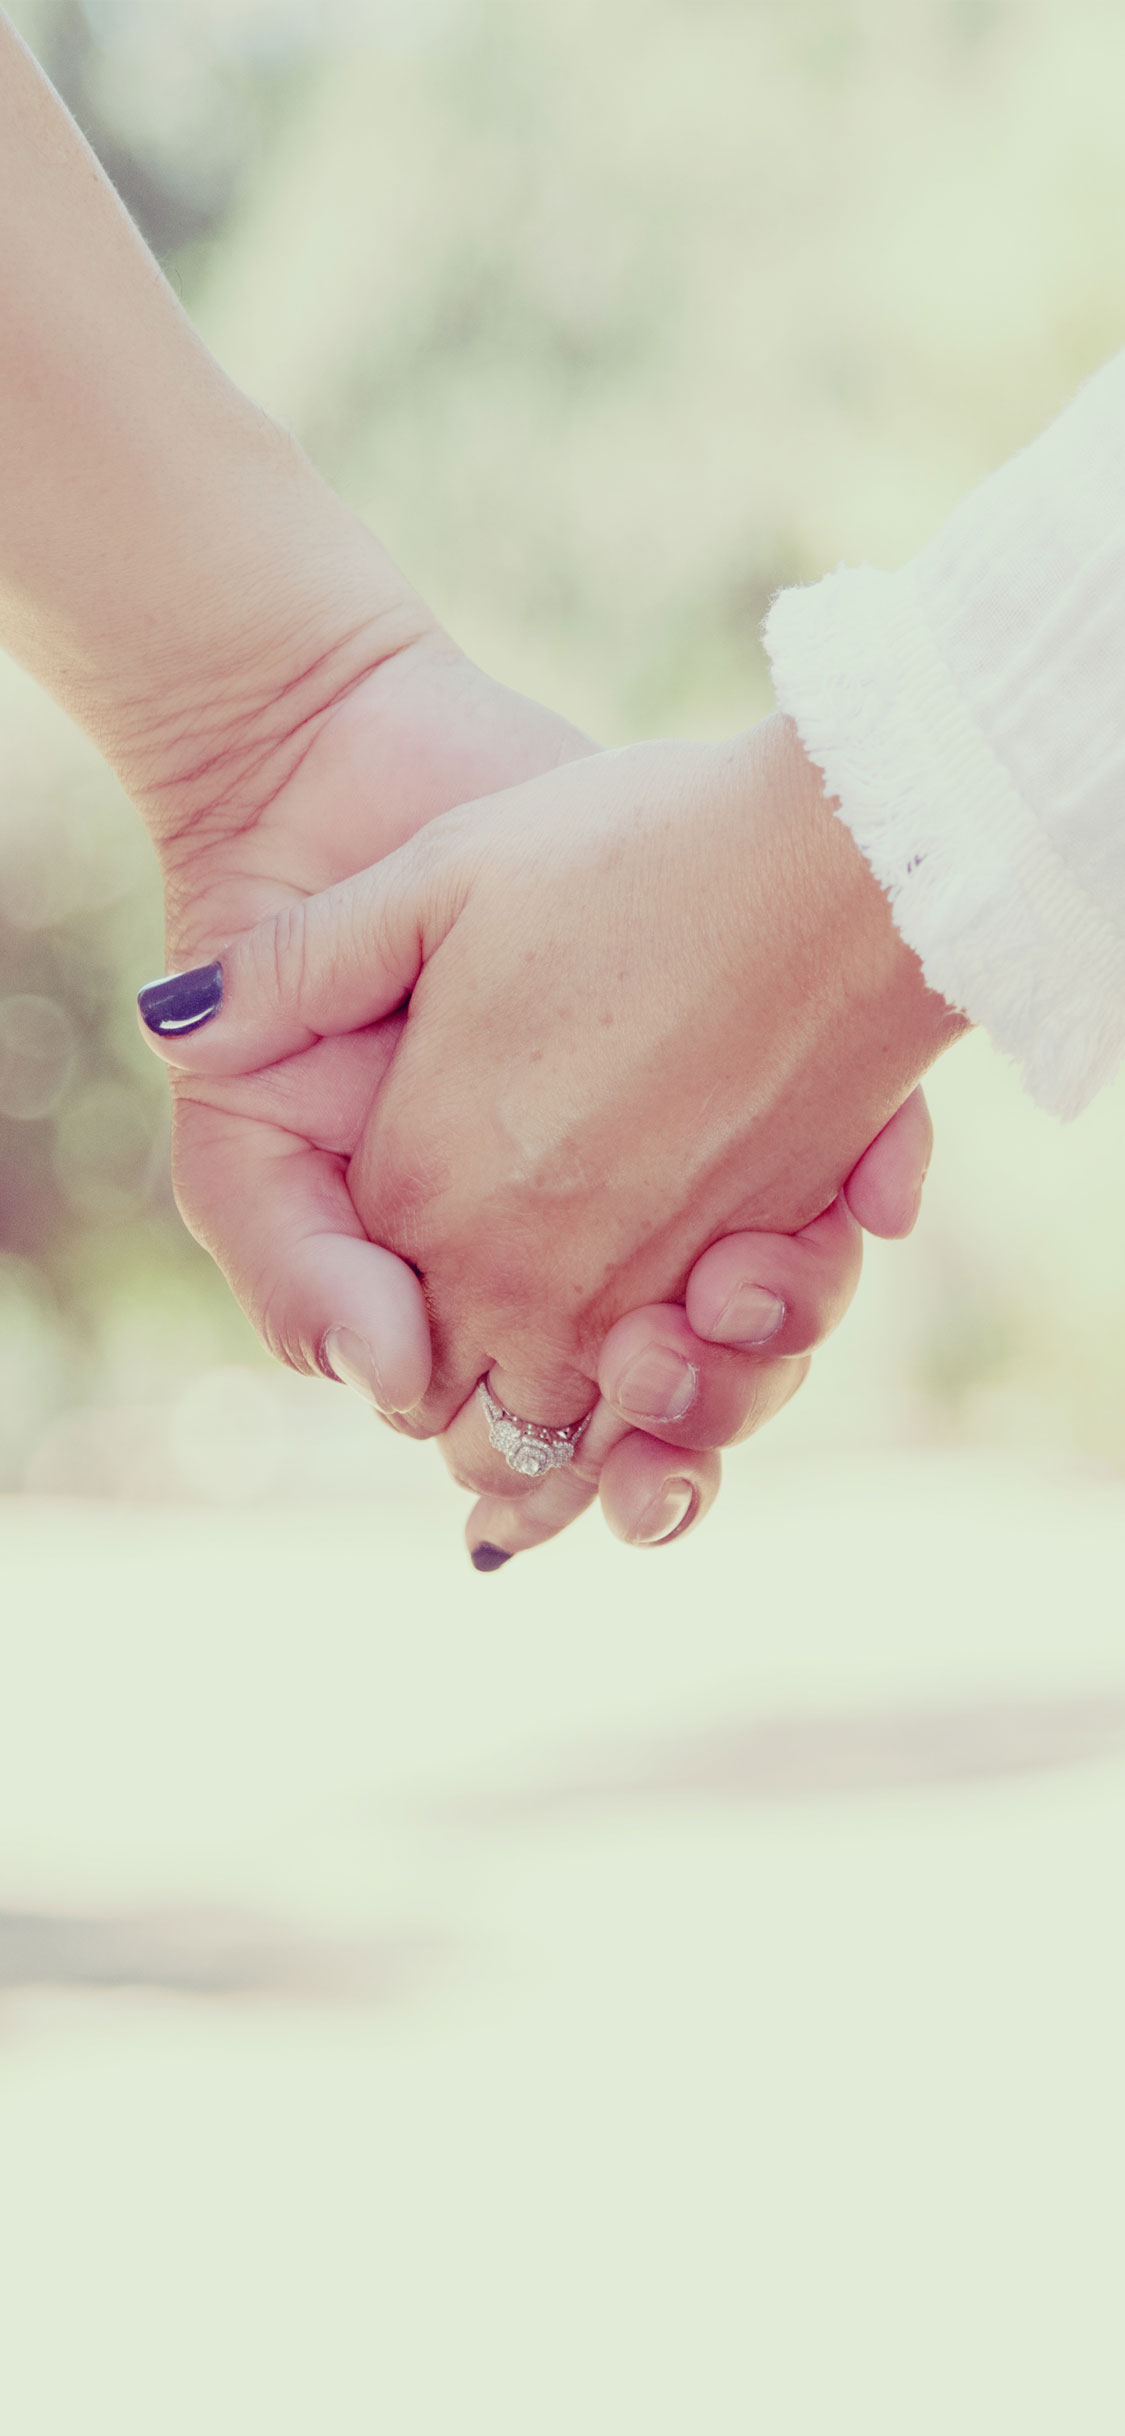 Cute Couple Holding Hands Wallpapers 30 New Iphone X Love Wallpapers Backgrounds For Couples